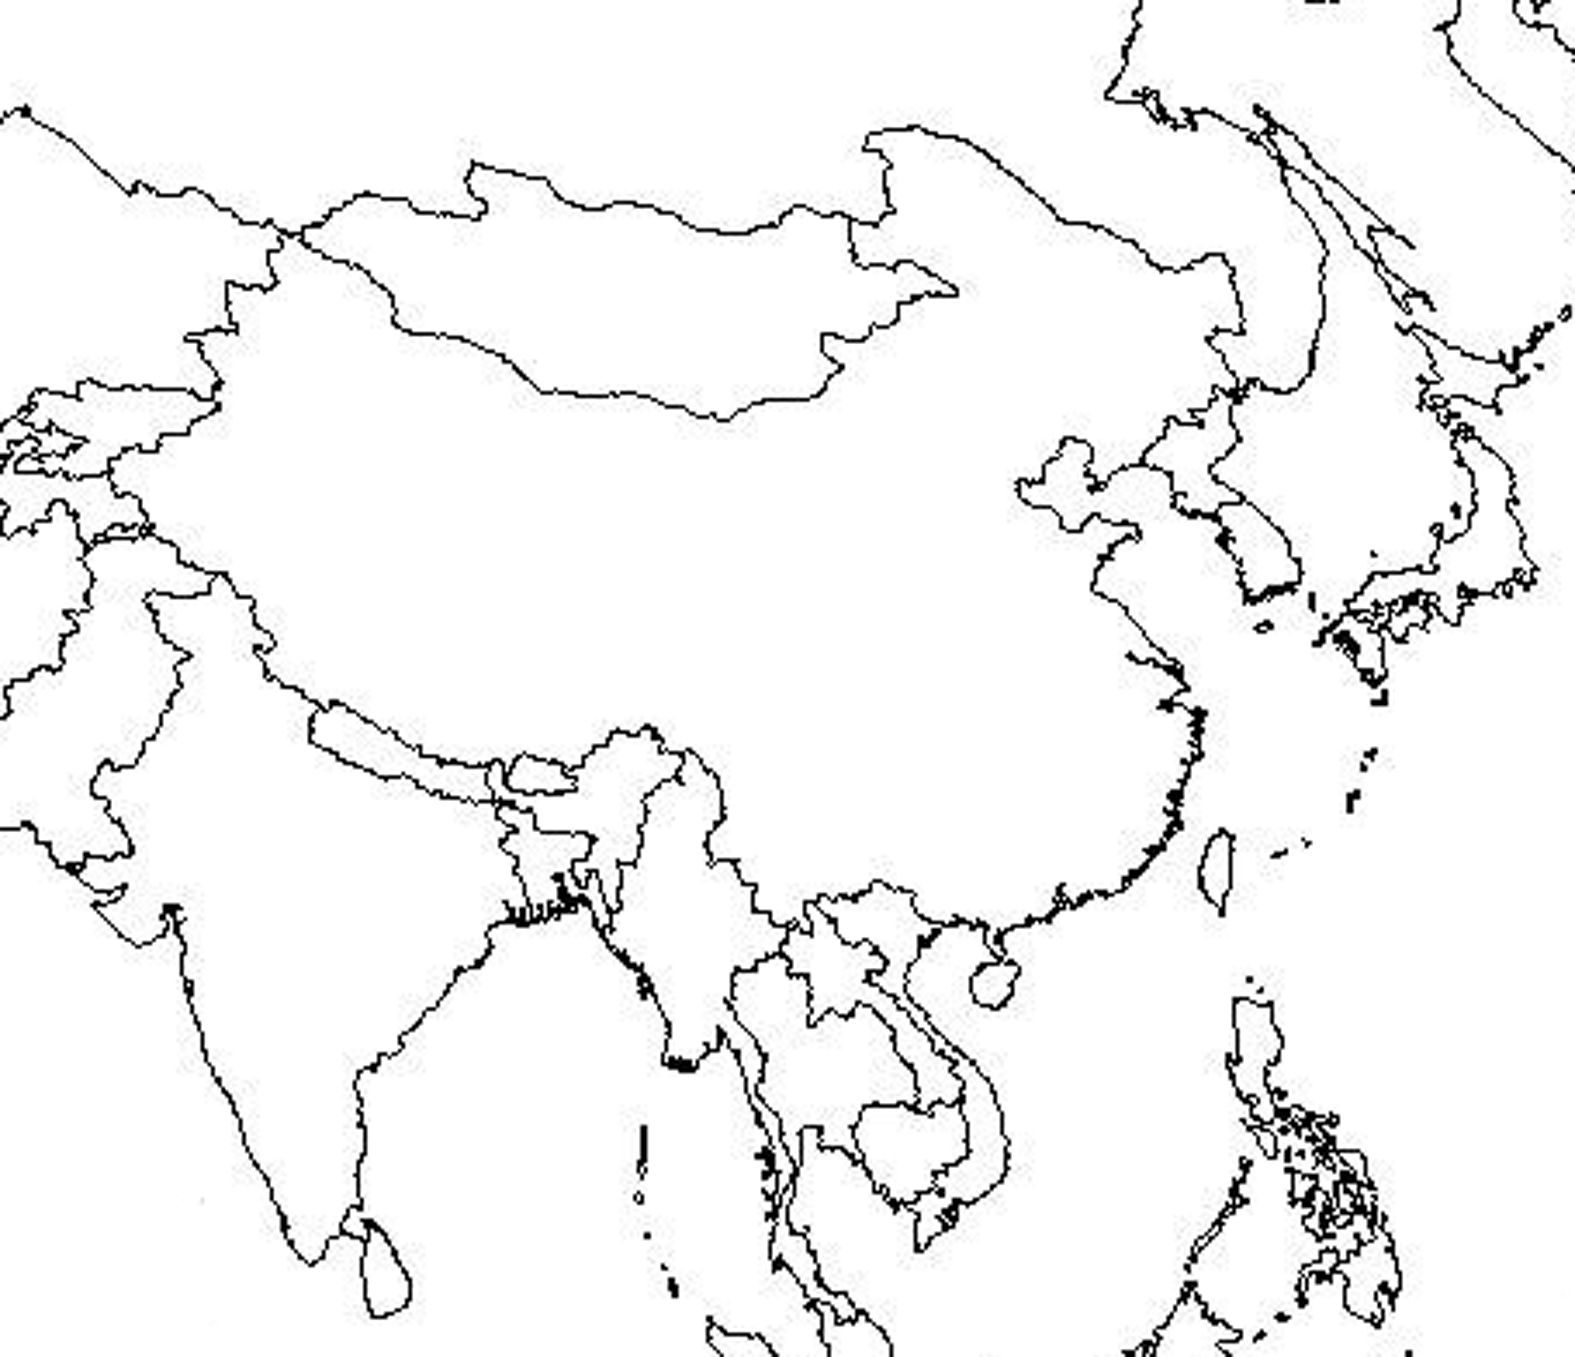 Outline Map Of Asia And Middle East Asia Map South Asia Map